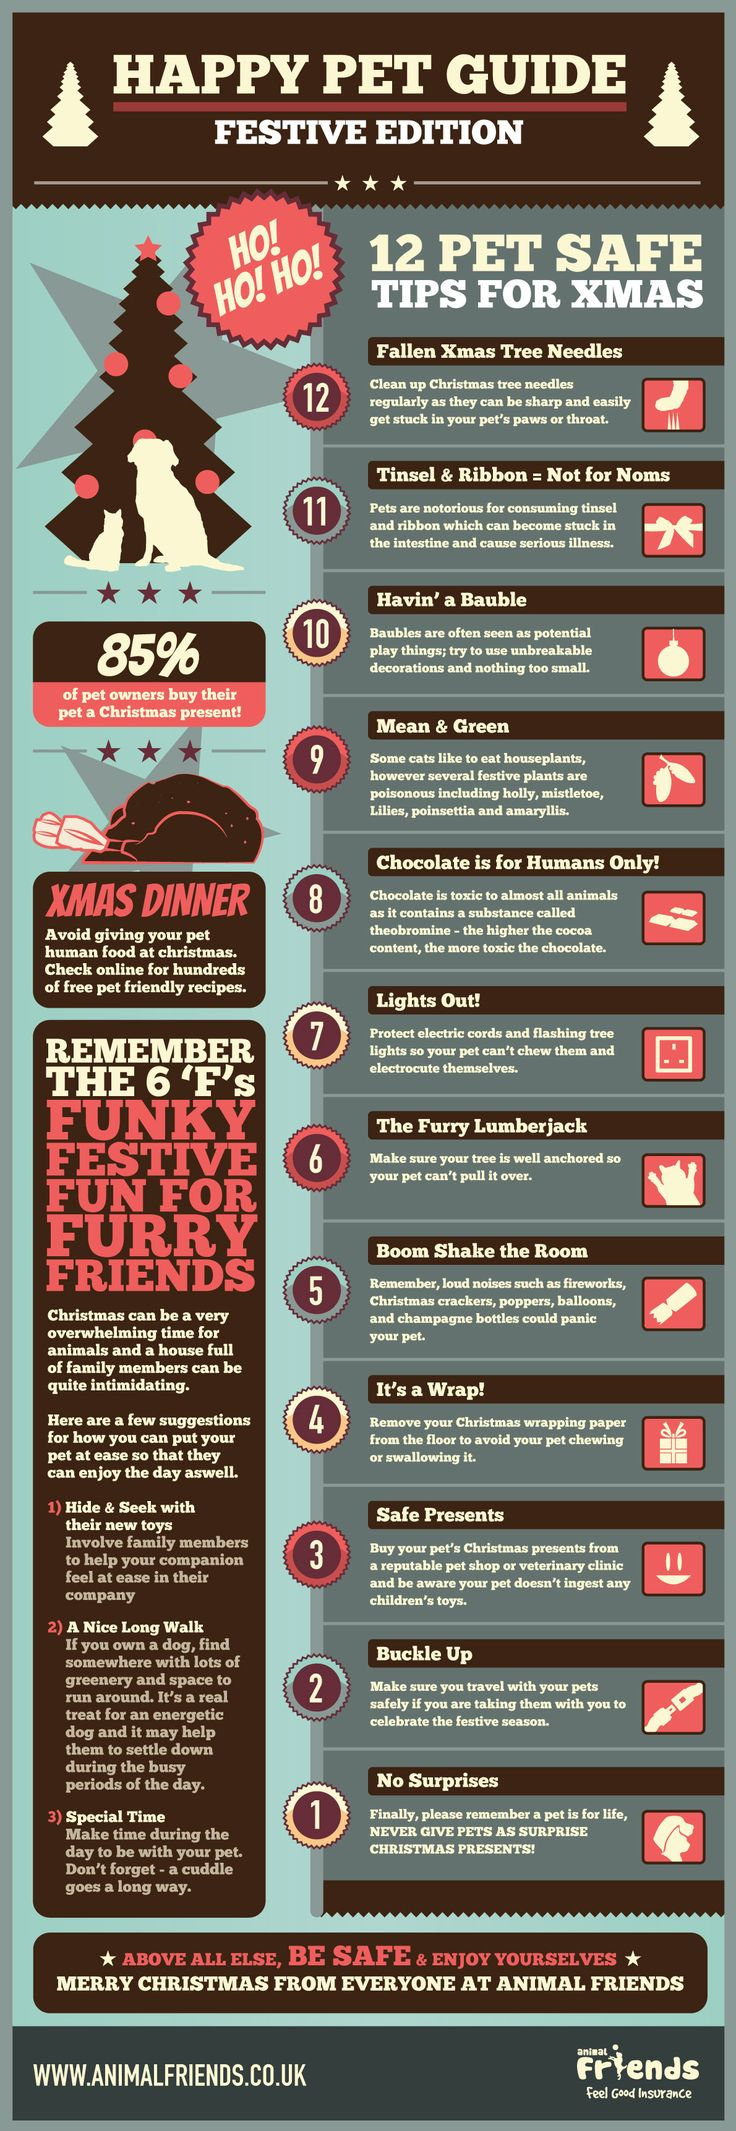 The festive season is fast approaching and whilst it is a jolly time for all, it is important to watch out for potential dangers to pets. This infographic offers 12 pet safe tips to help keep your pets safe this Christmas as well the 6 'F's; funky festive fun for furry friends. 12 Days of Xmas – Info-graphic